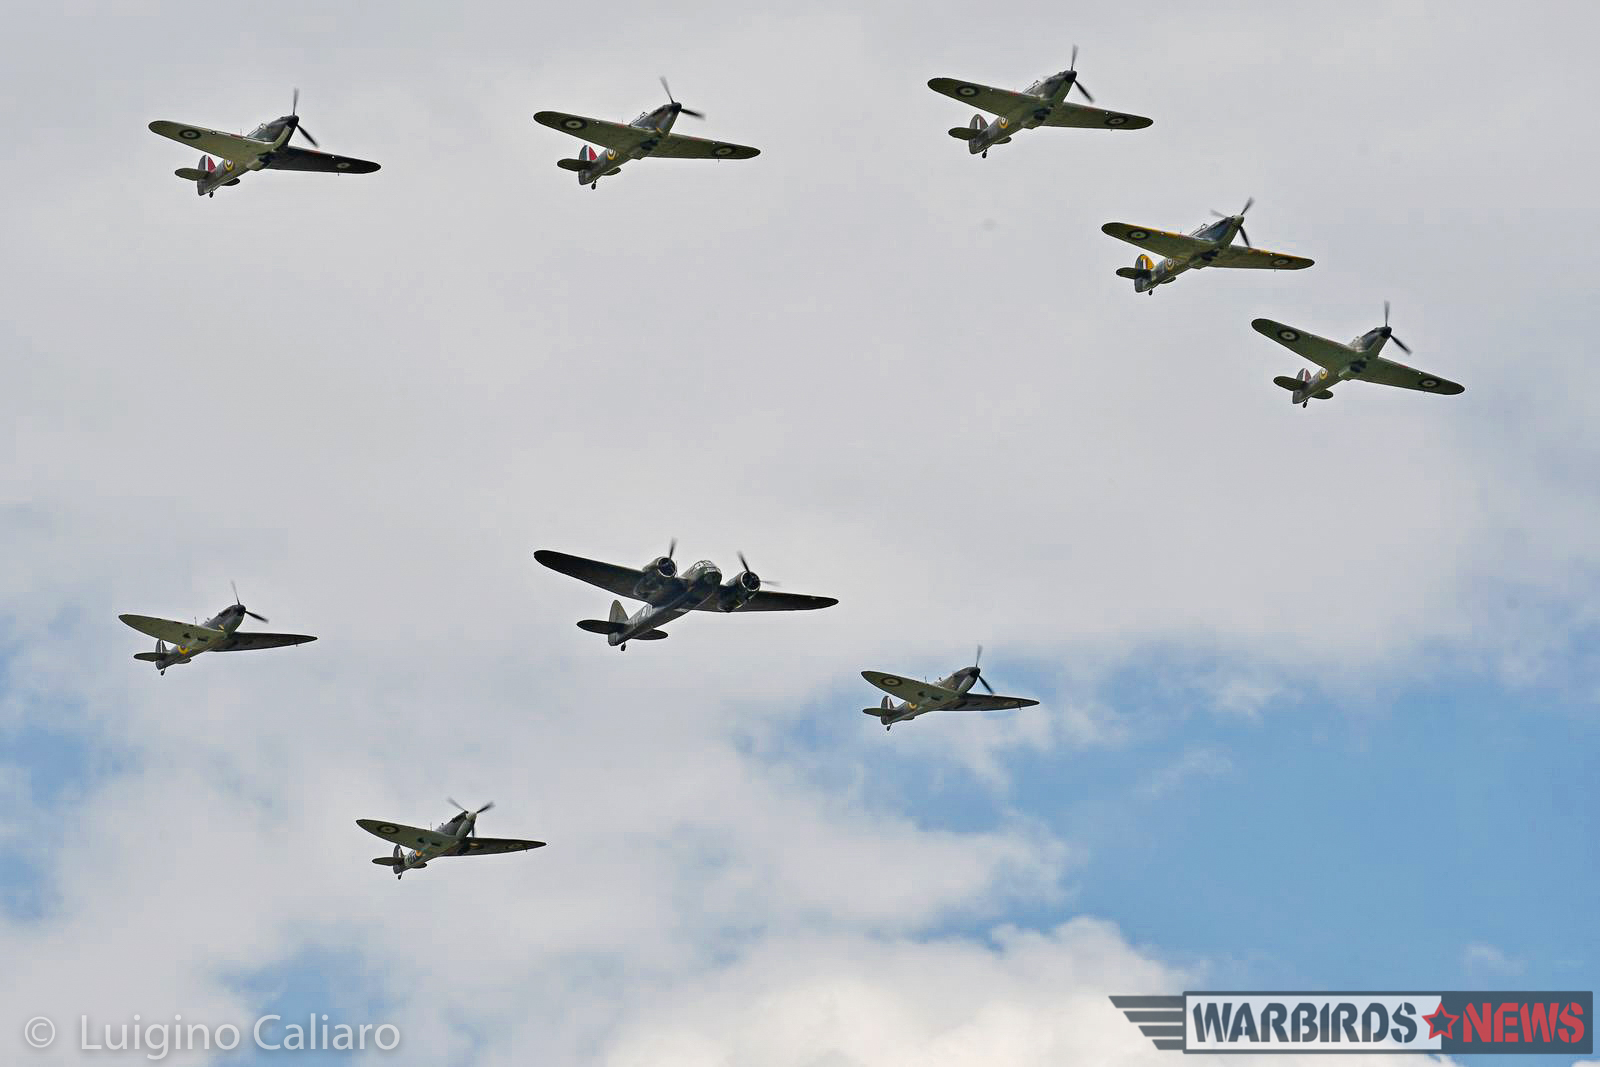 The Battle of Britain flypast, with FIVE Hawker Hurricanes, three Spitfire Mk.Is and a Blenheim Mk.I. A truly staggering sight unimaginable even just a few years ago. (photo by Luigino Caliaro)